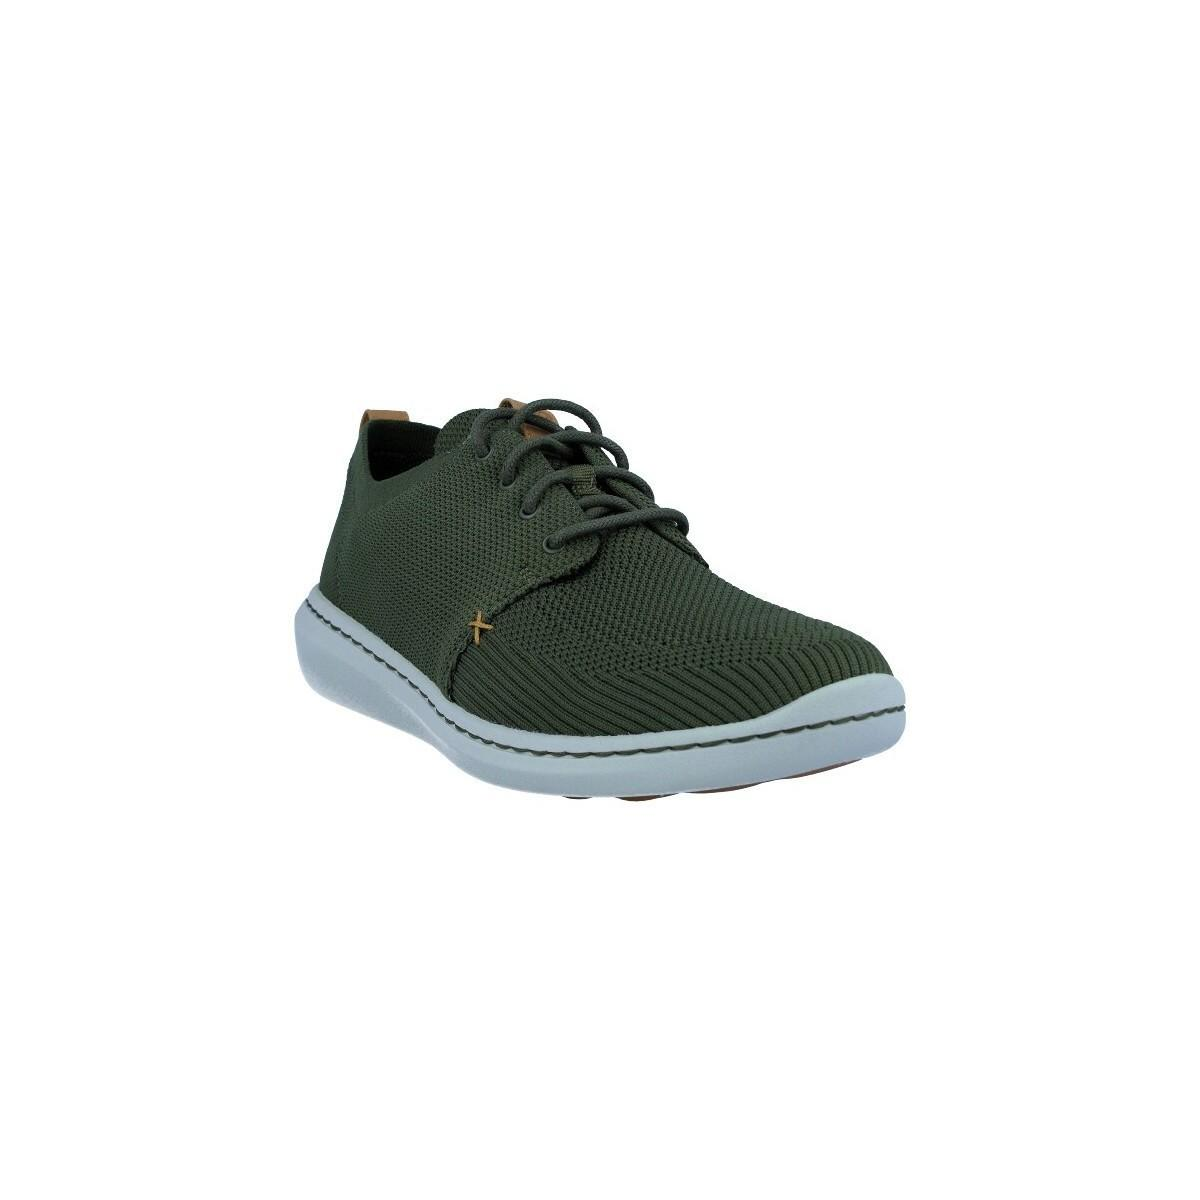 Clarks - Step Urban Mix Zapatos Casual De Hombre Men s Shoes (trainers) In  Green. View fullscreen 1f4c1eed0